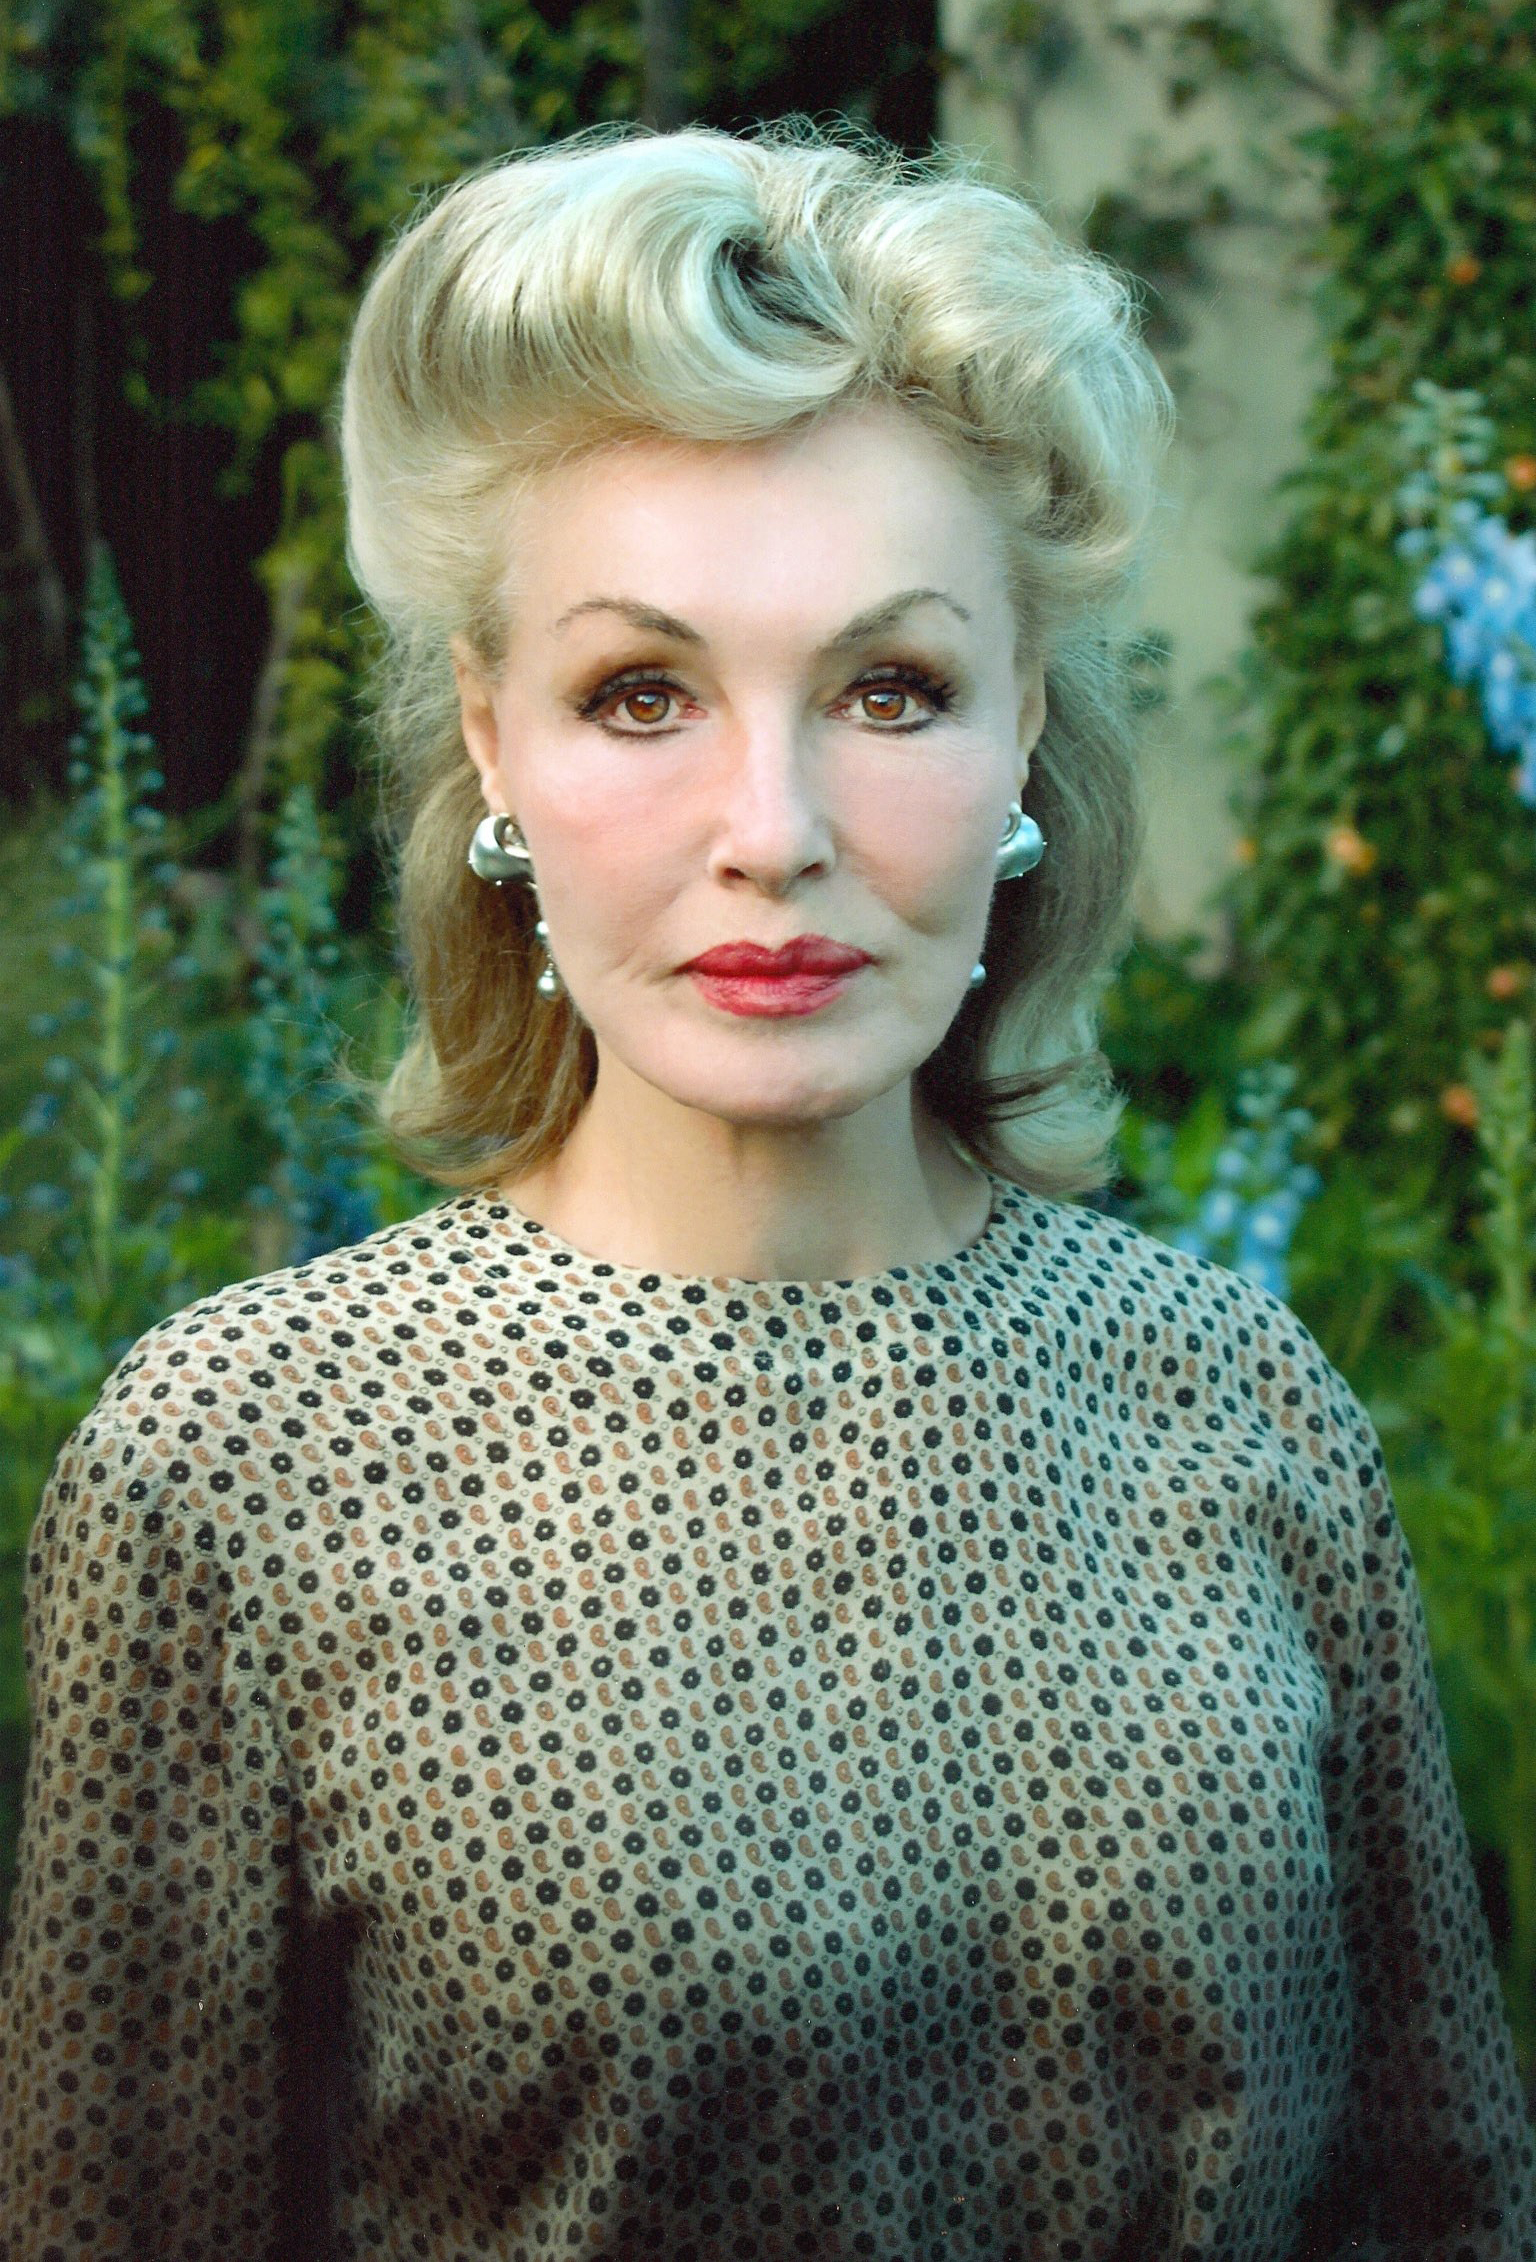 julie newmar measurementsjulie newmar height, julie newmar too funky, julie newmar 2016, julie newmar batman, julie newmar wiki, julie newmar catwoman, julie newmar 2015, julie newmar to wong foo, julie newmar stupefyin jones, julie newmar imdb, julie newmar camren bicondova, julie newmar instagram, julie newmar, julie newmar 2014, julie newmar now, julie newmar twilight zone, julie newmar thanks for everything, julie newmar son, julie newmar measurements, julie newmar net worth